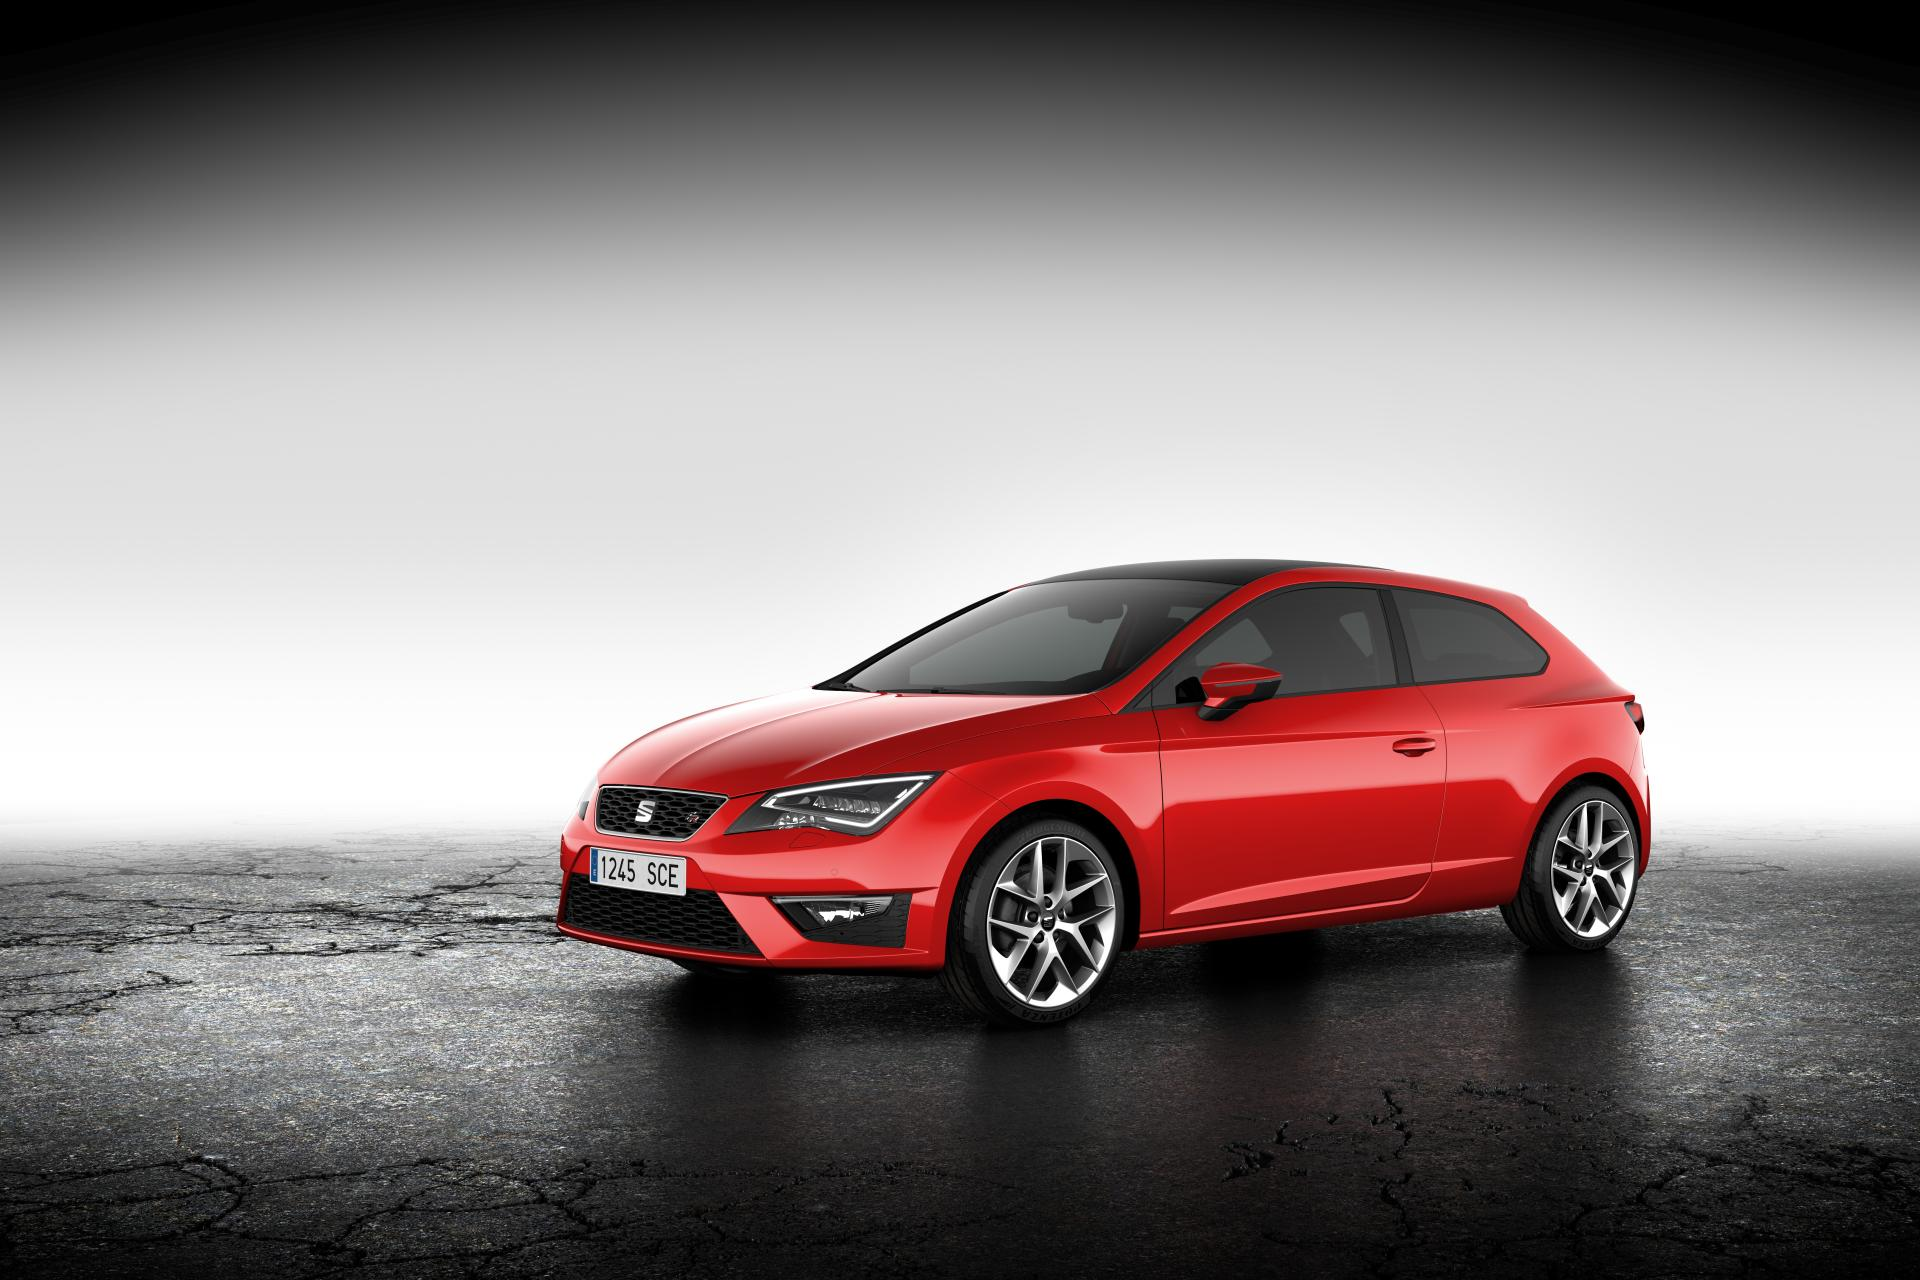 2014 seat leon sc news and information. Black Bedroom Furniture Sets. Home Design Ideas